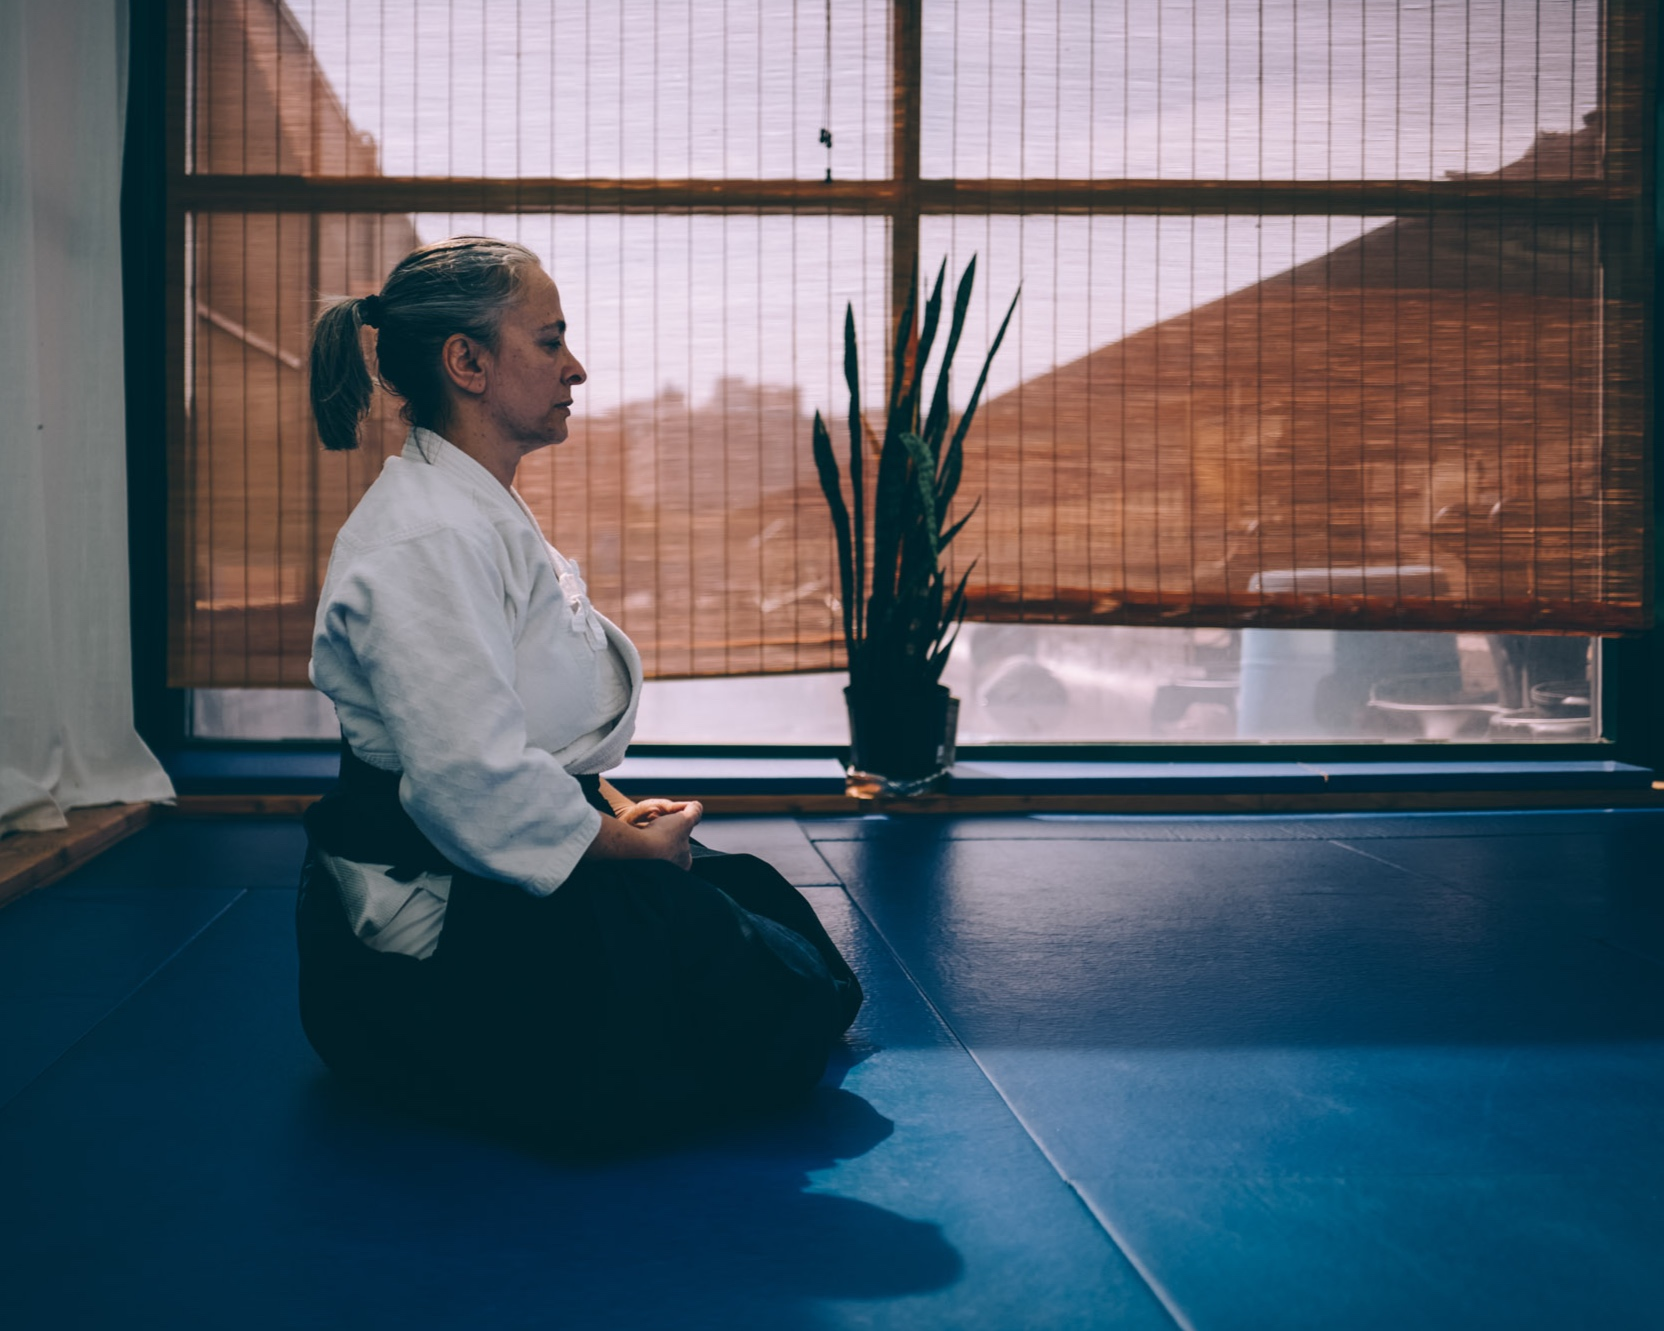 Claire Keller leads an Aikido class at Bushwhack Dojo, in Brooklyn